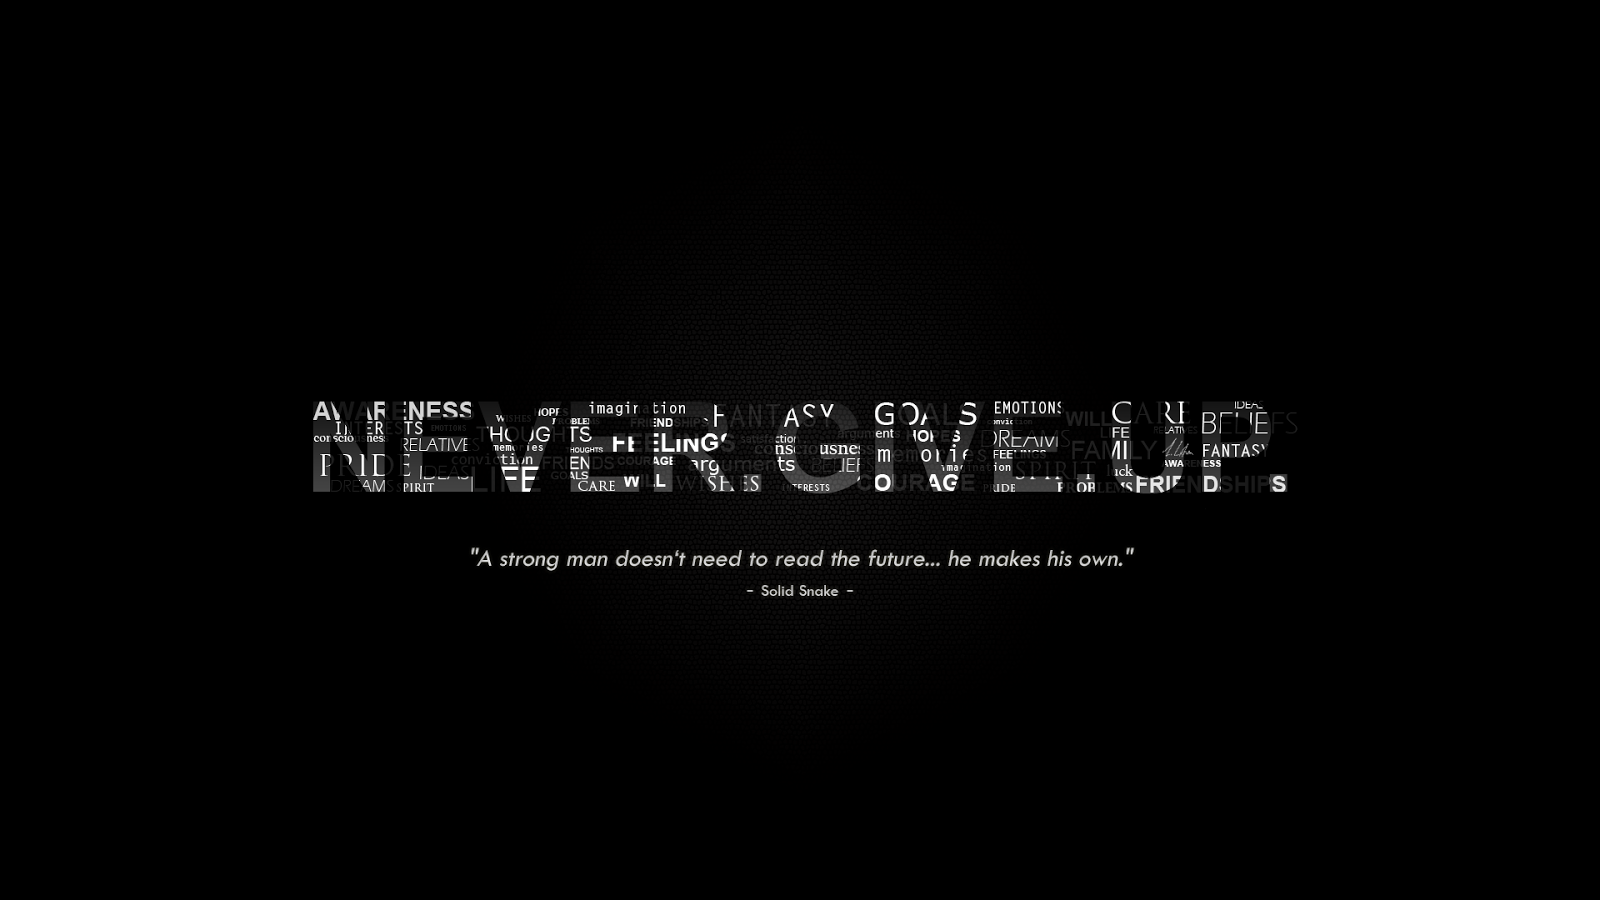 Don't Give Up Wallpaper 07 - [1600x900]